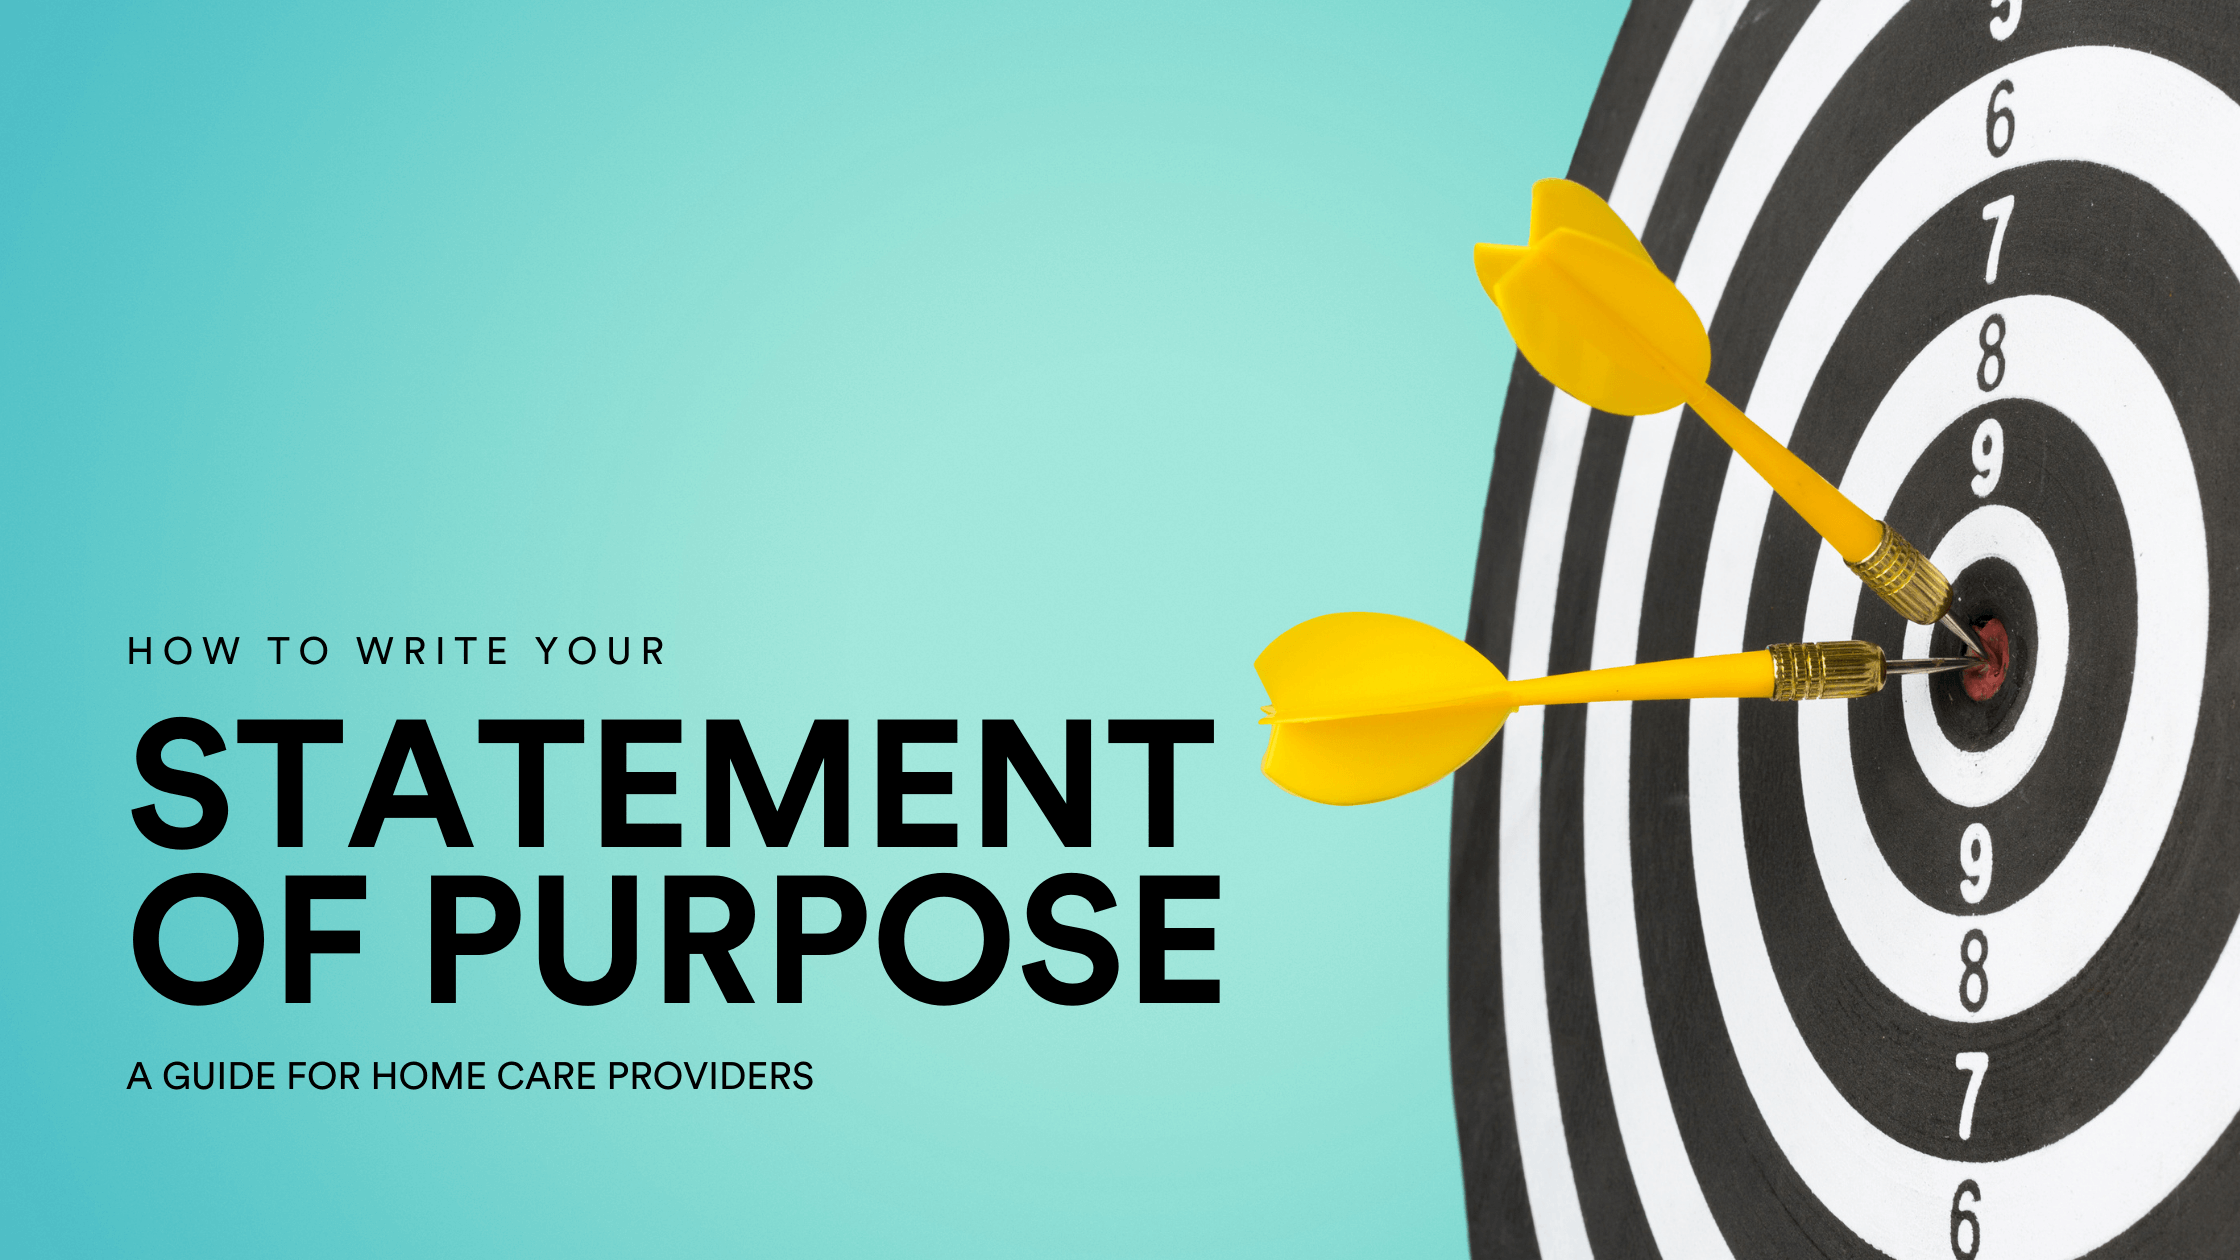 Header image with title: How to write your statement of purpose: a guide for home care providers. Image in the background features a black and white dartboard on a blue background with two yellow arrows at the centre